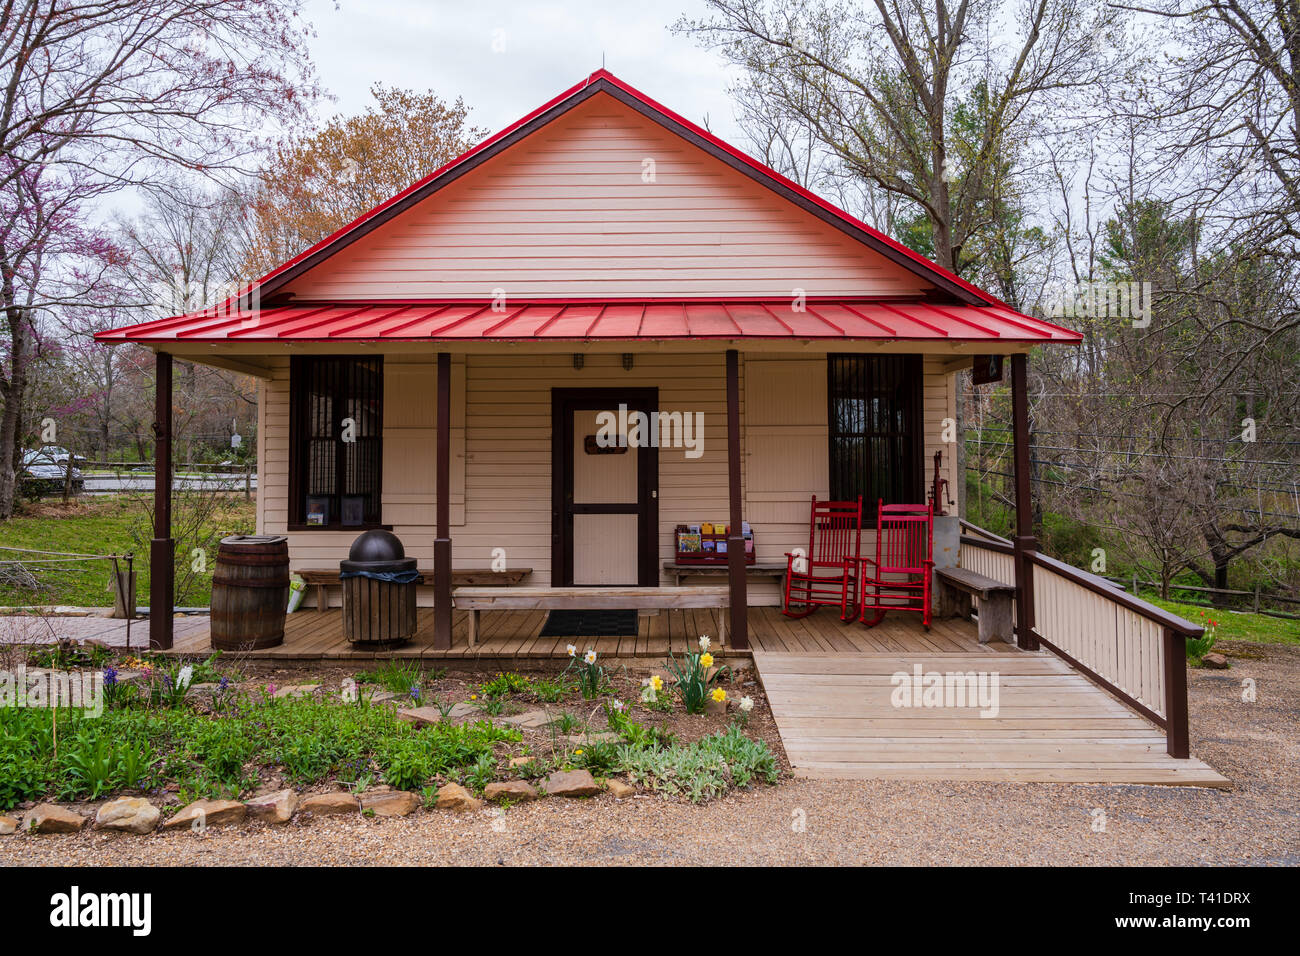 Great Falls, VA, USA -- April 11,2019. Replication of an old-fashioned general store at the historic Colvin Run Mill, in Great Falls, VA. - Stock Image